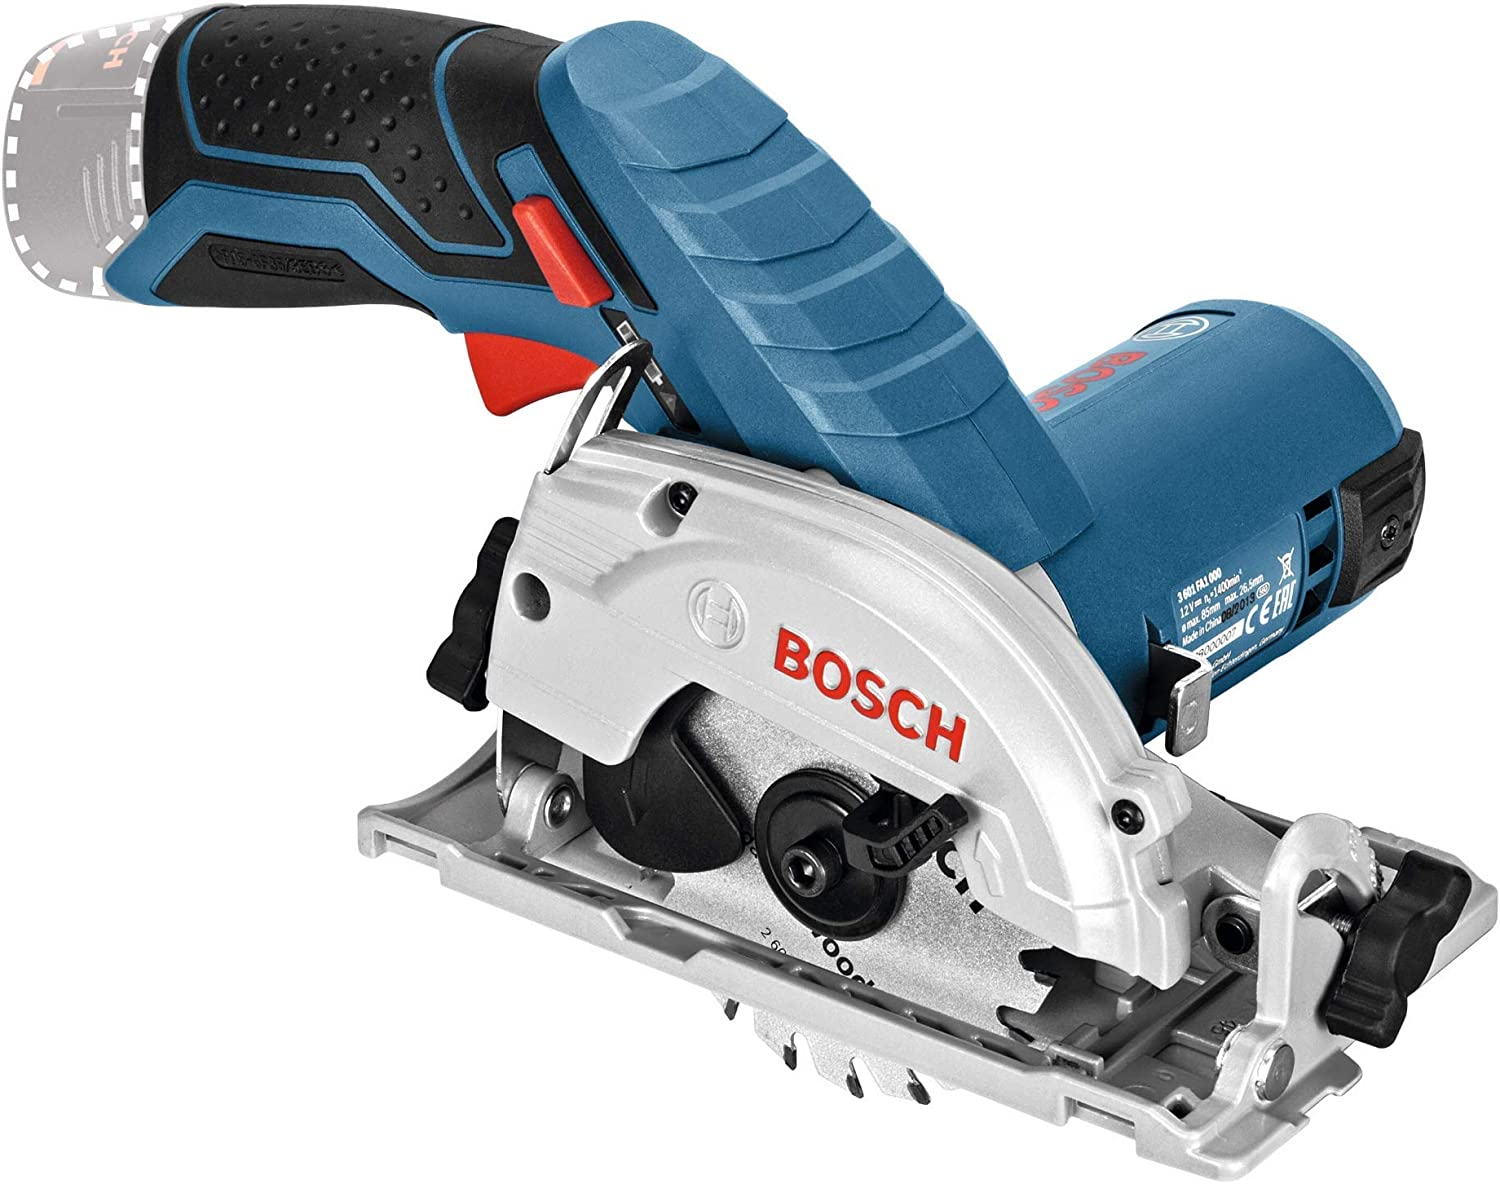 Bosch Professional Gks 12 V-26 Cordless Circular Saw (Without Battery And Charger) - Carton